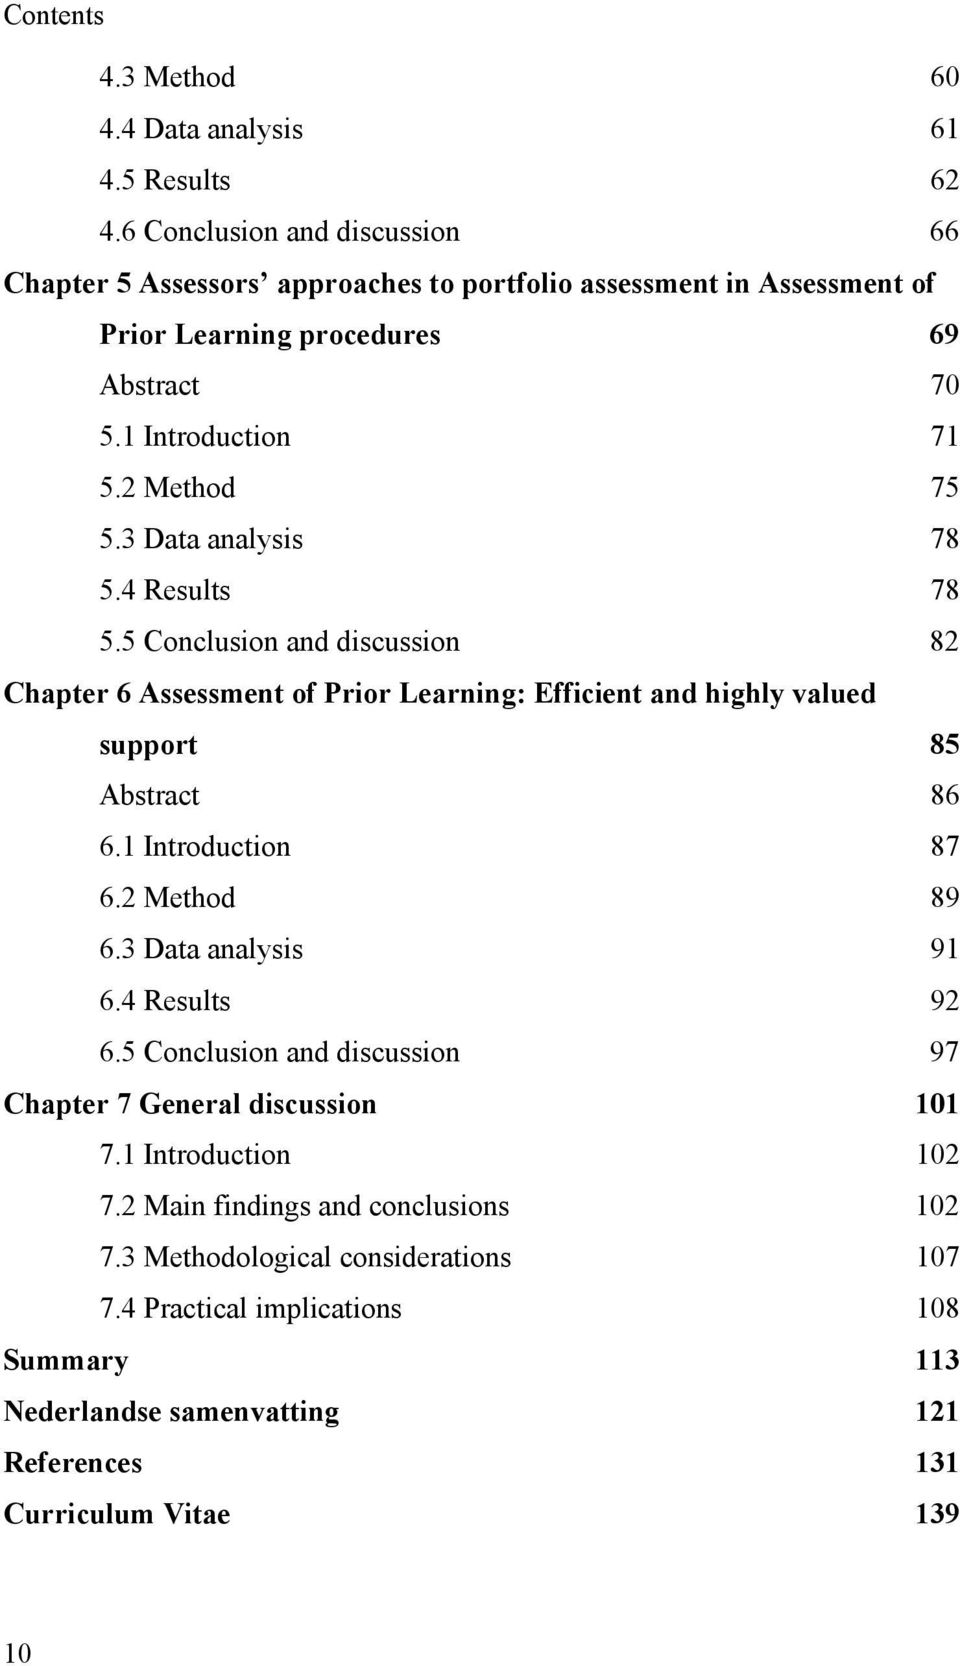 3 Data analysis 78 5.4 Results 78 5.5 Conclusion and discussion 82 Chapter 6 Assessment of Prior Learning: Efficient and highly valued support 85 Abstract 86 6.1 Introduction 87 6.